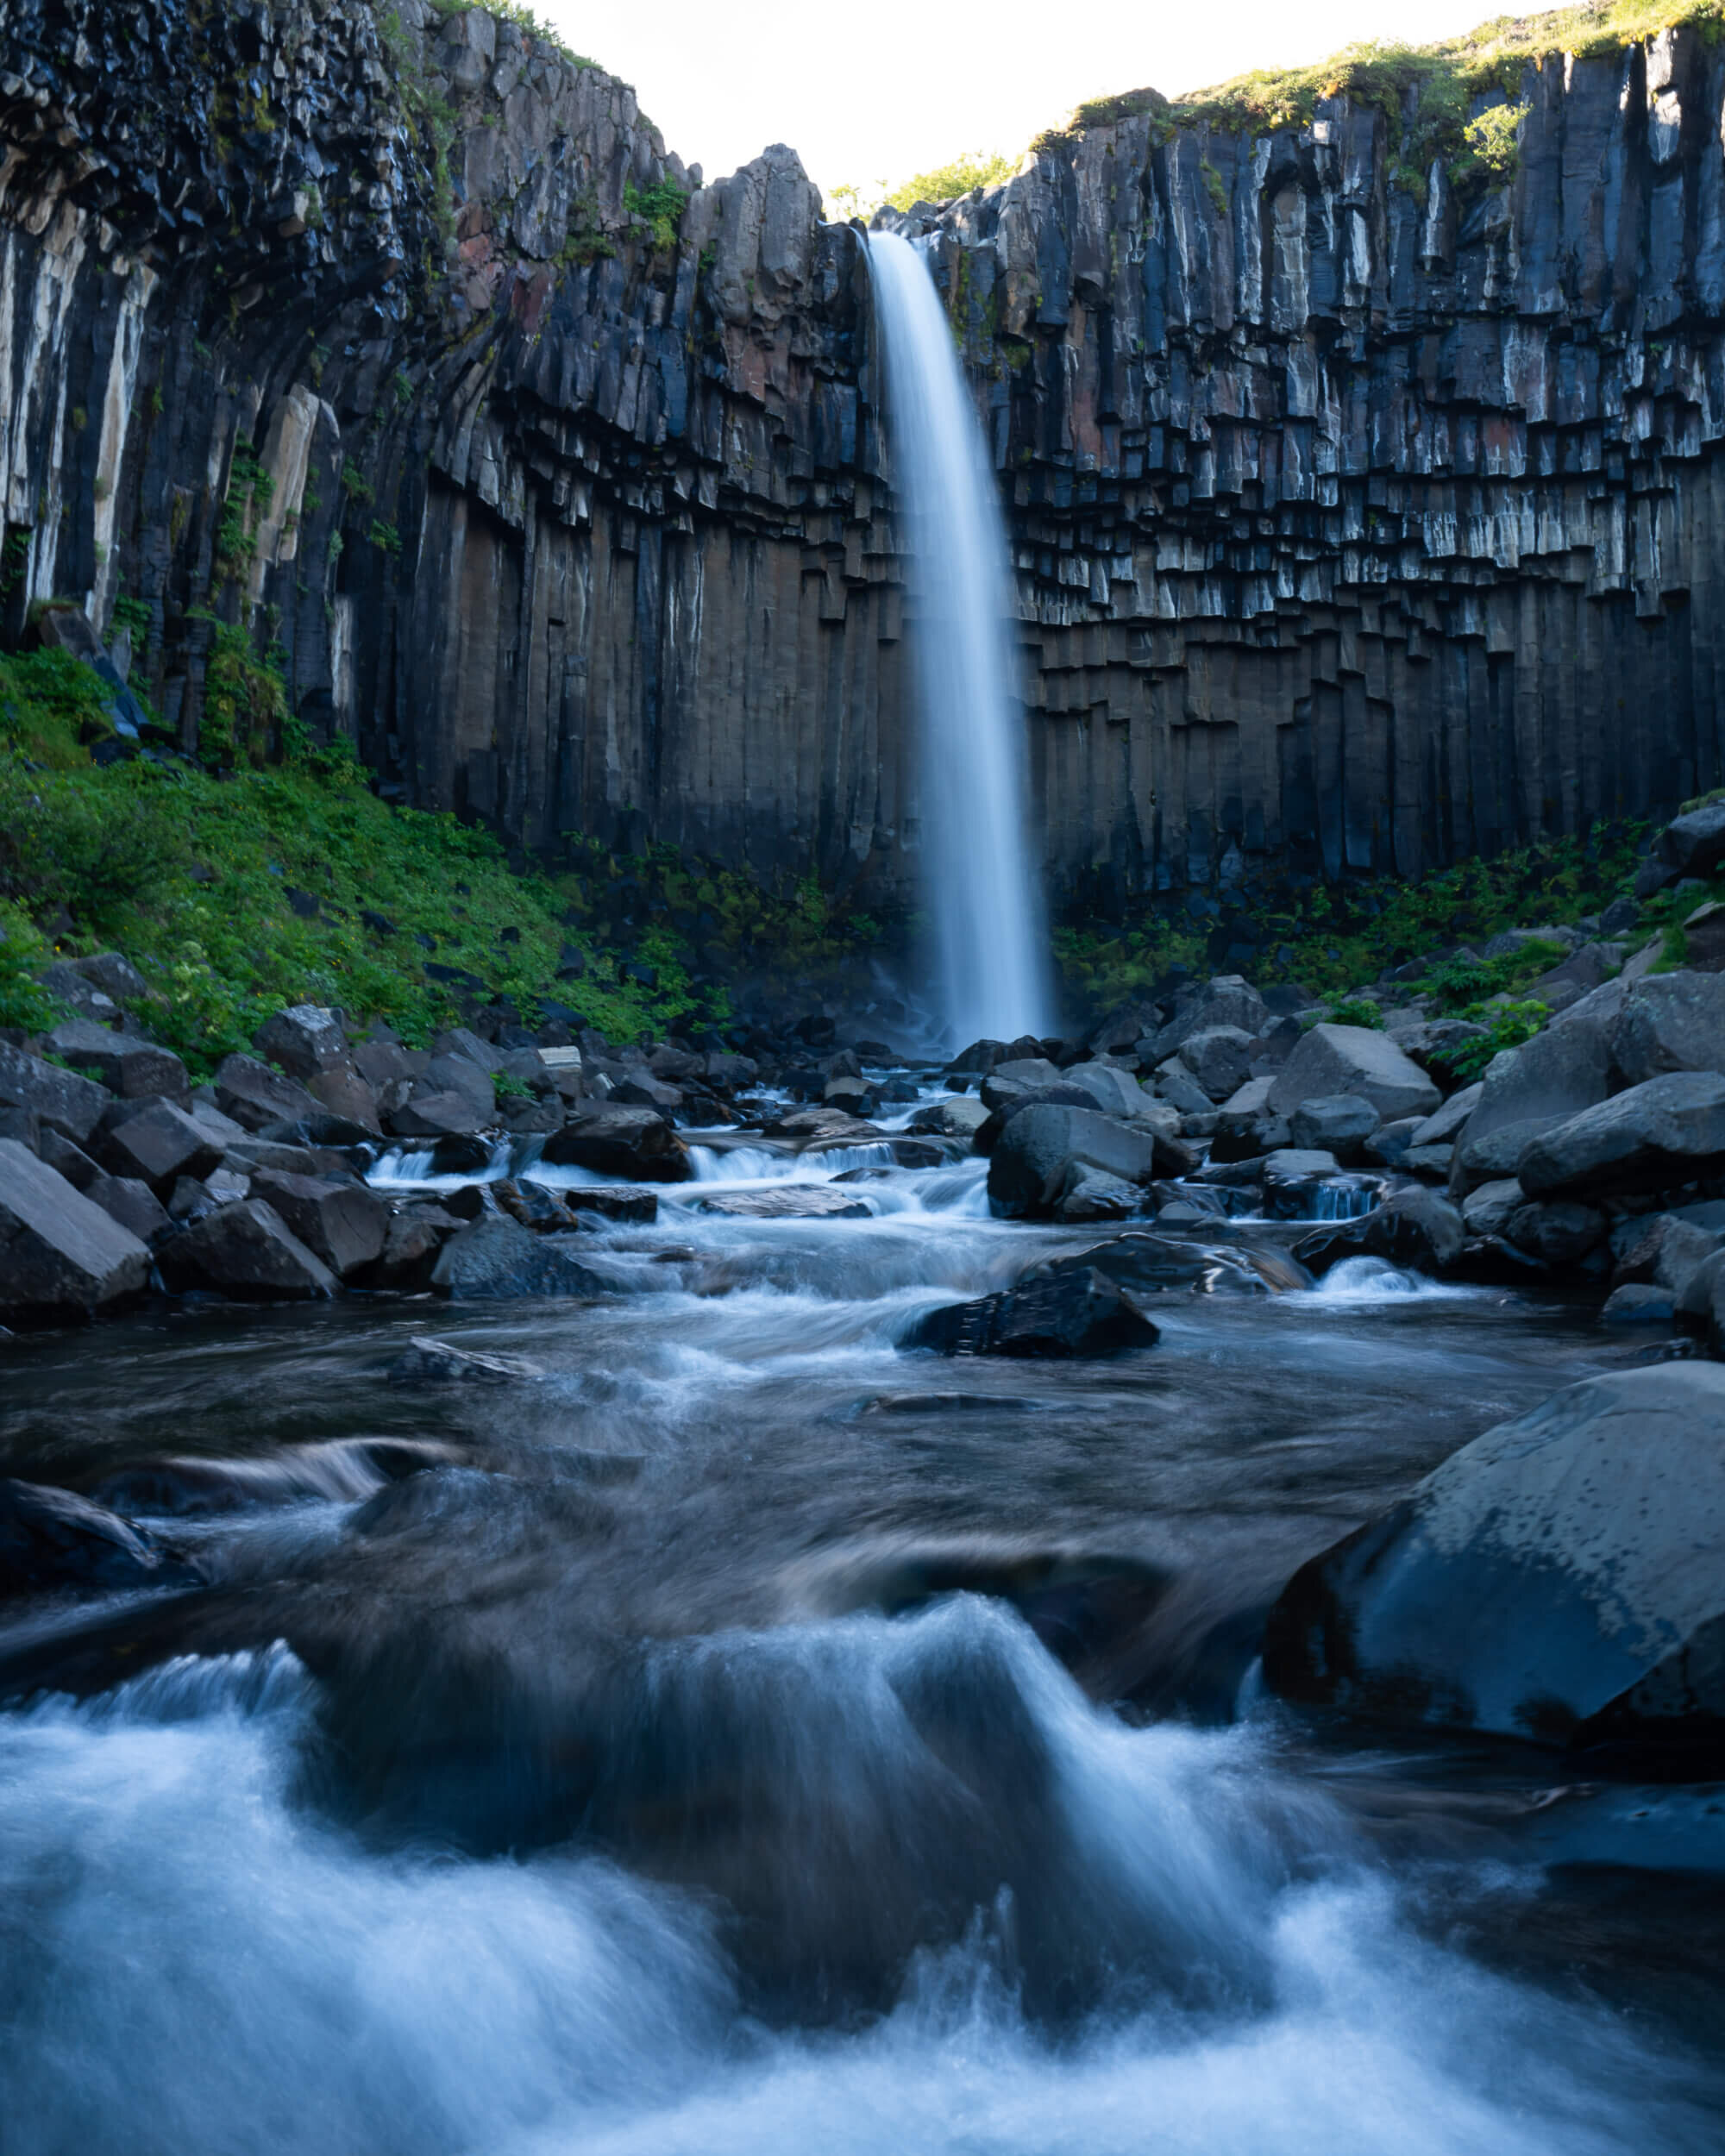 A short hike in Skaftafell National Park will take you to Svartifoss Waterfall with its famous basalt columns.